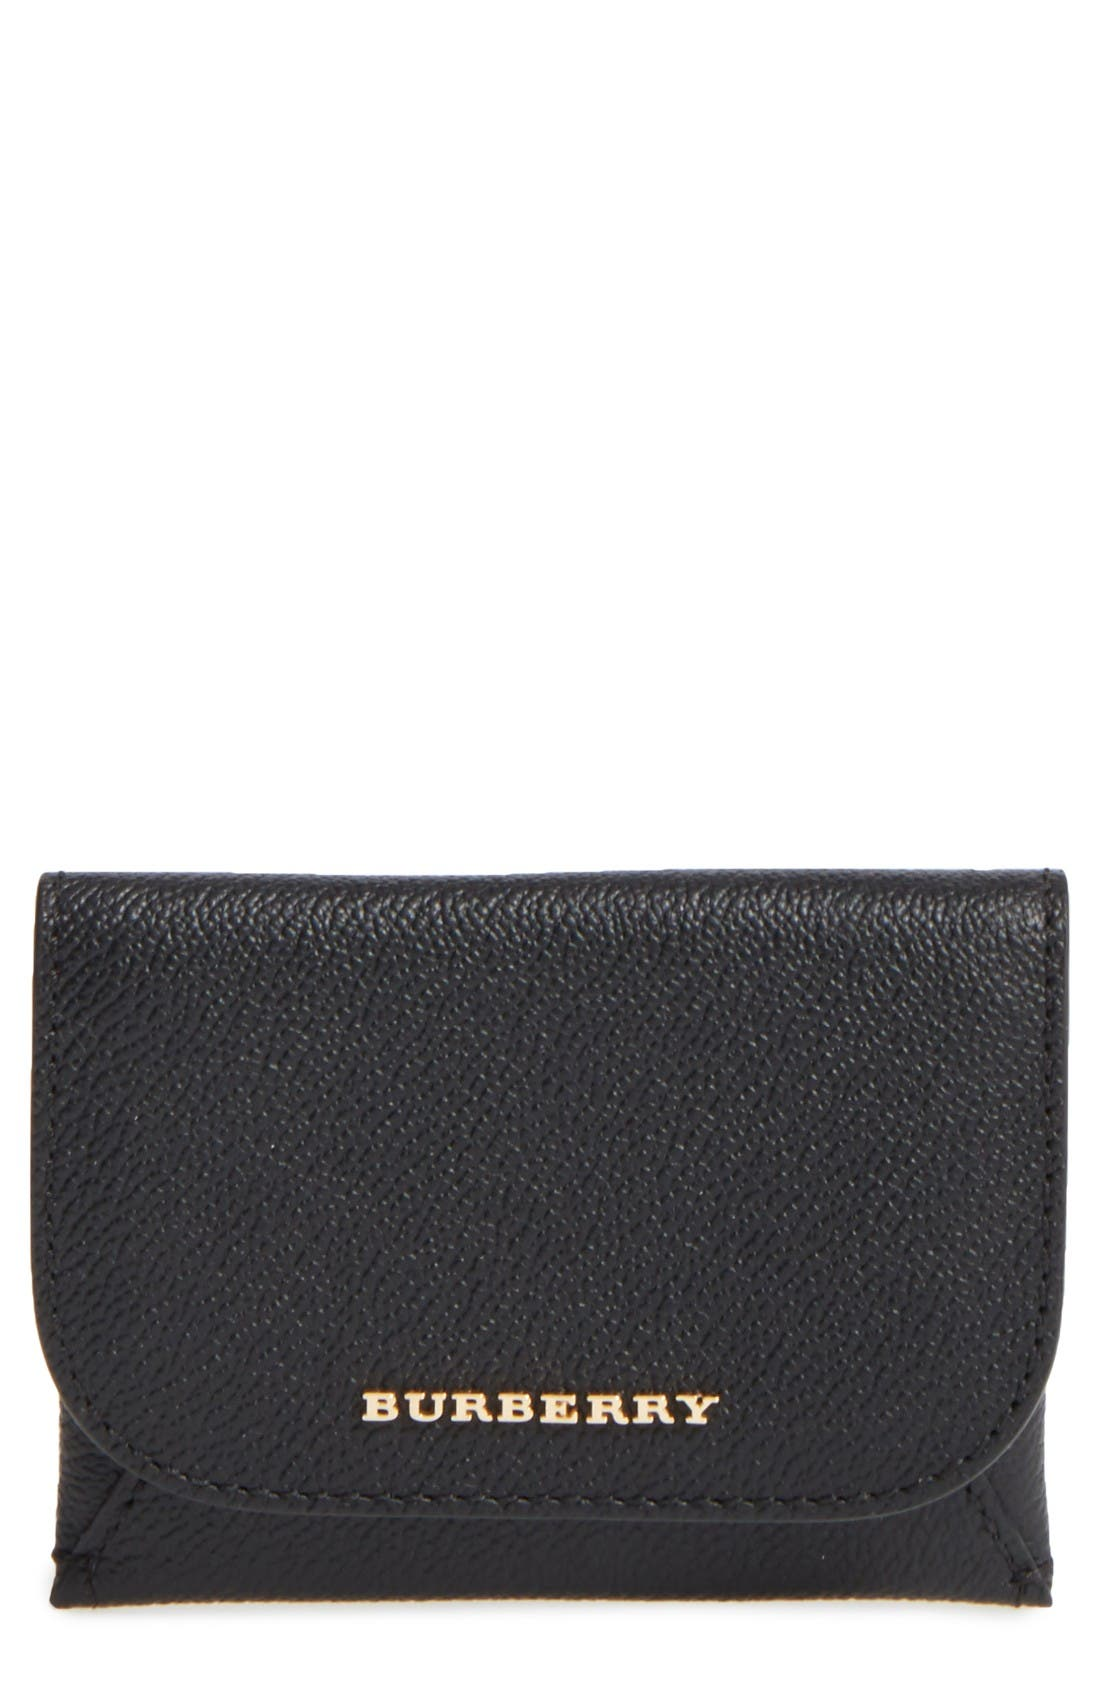 BURBERRY Mayfield Leather Card Case